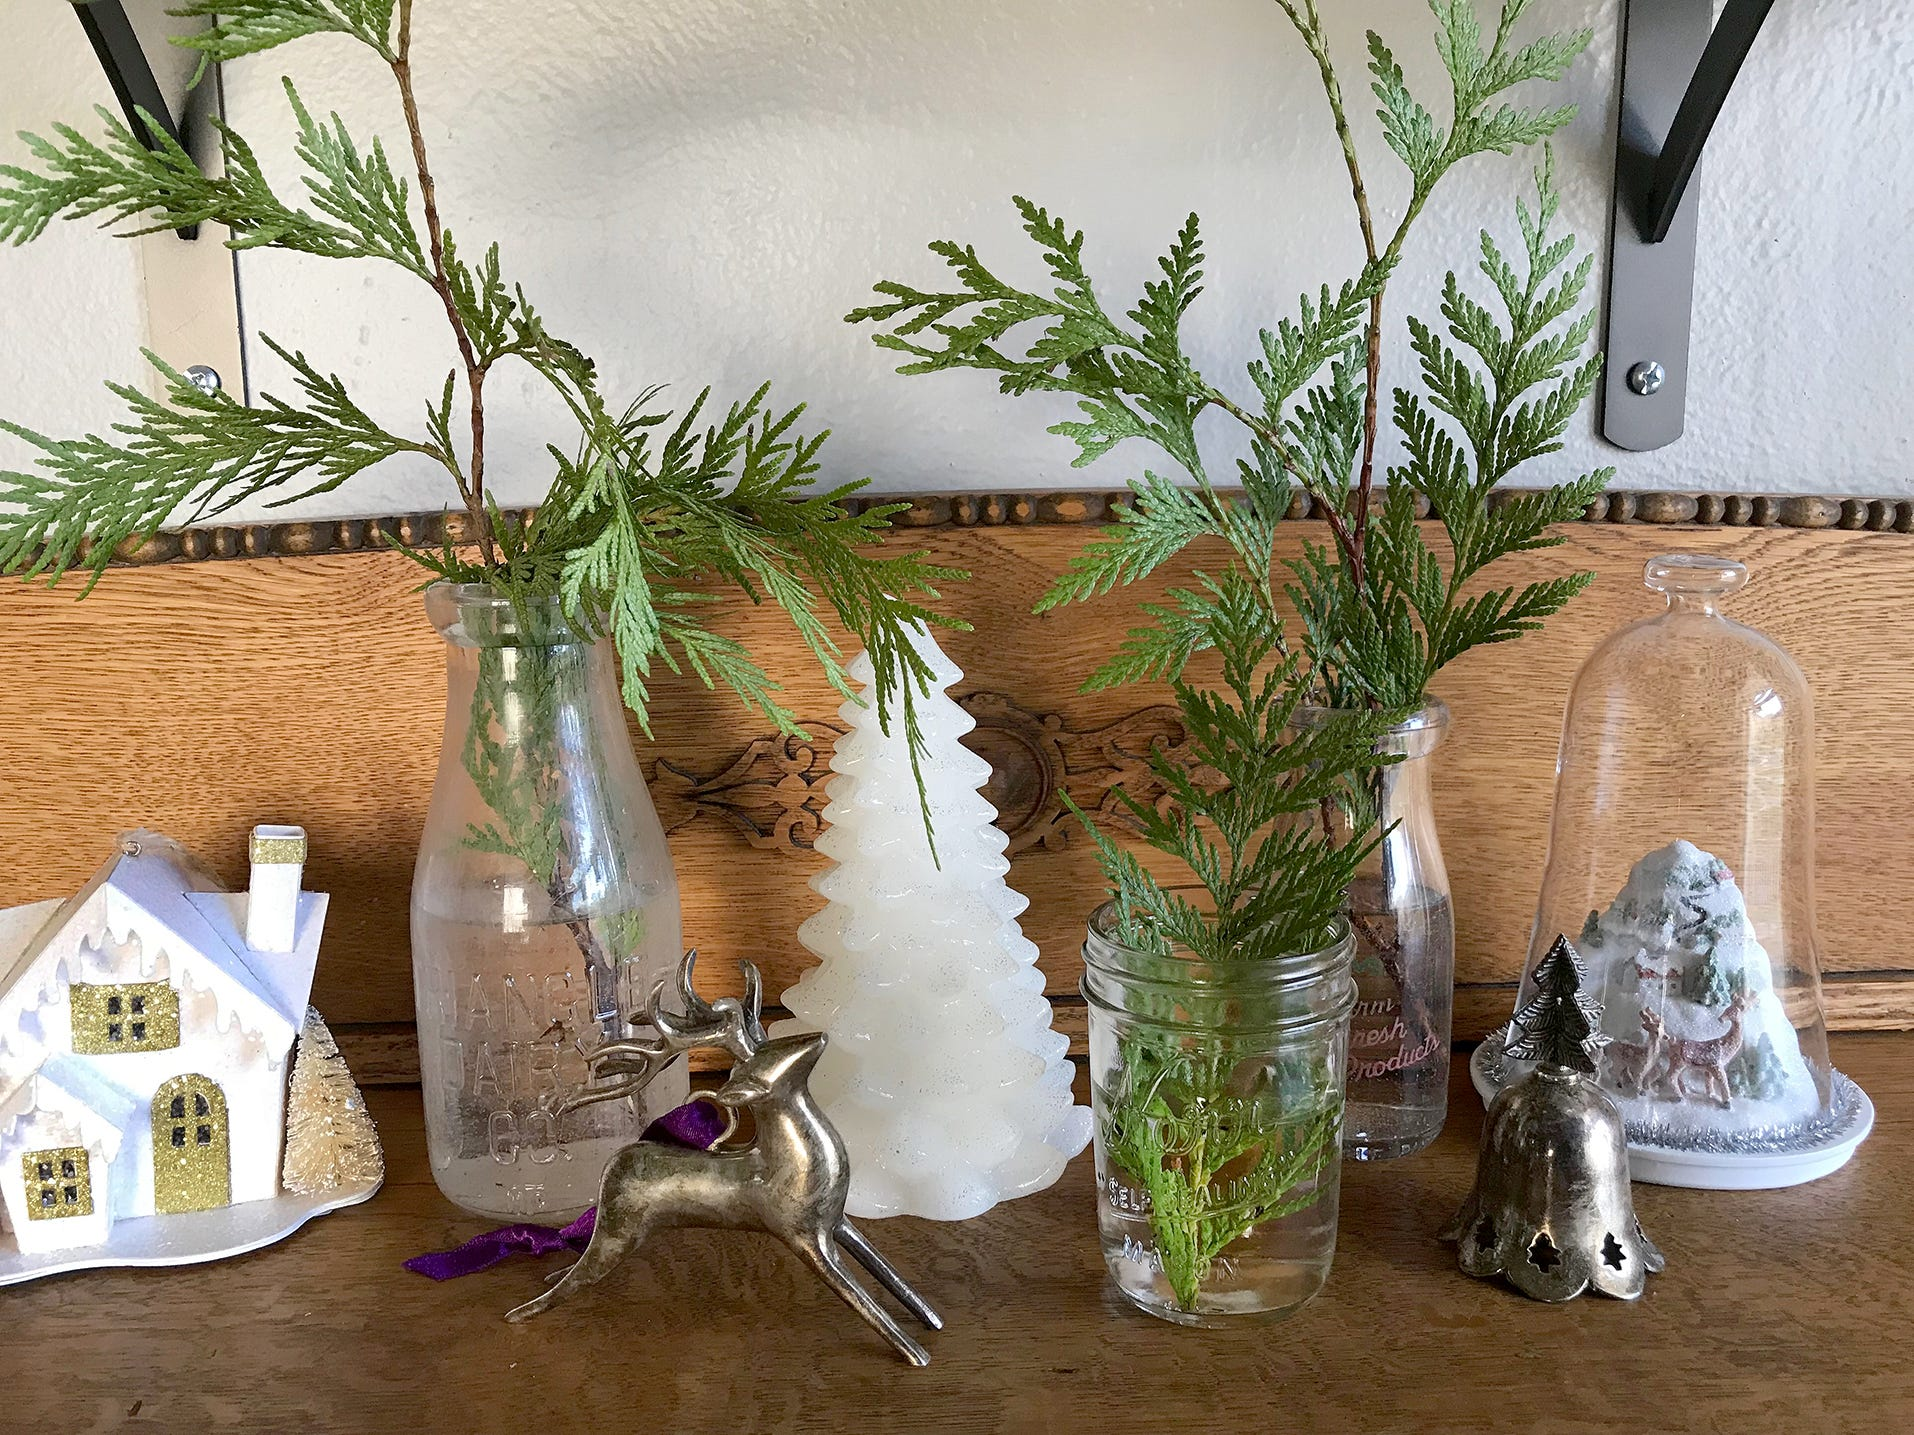 Some sprigs of garland in vases bring a fresh element to vintage decorations.